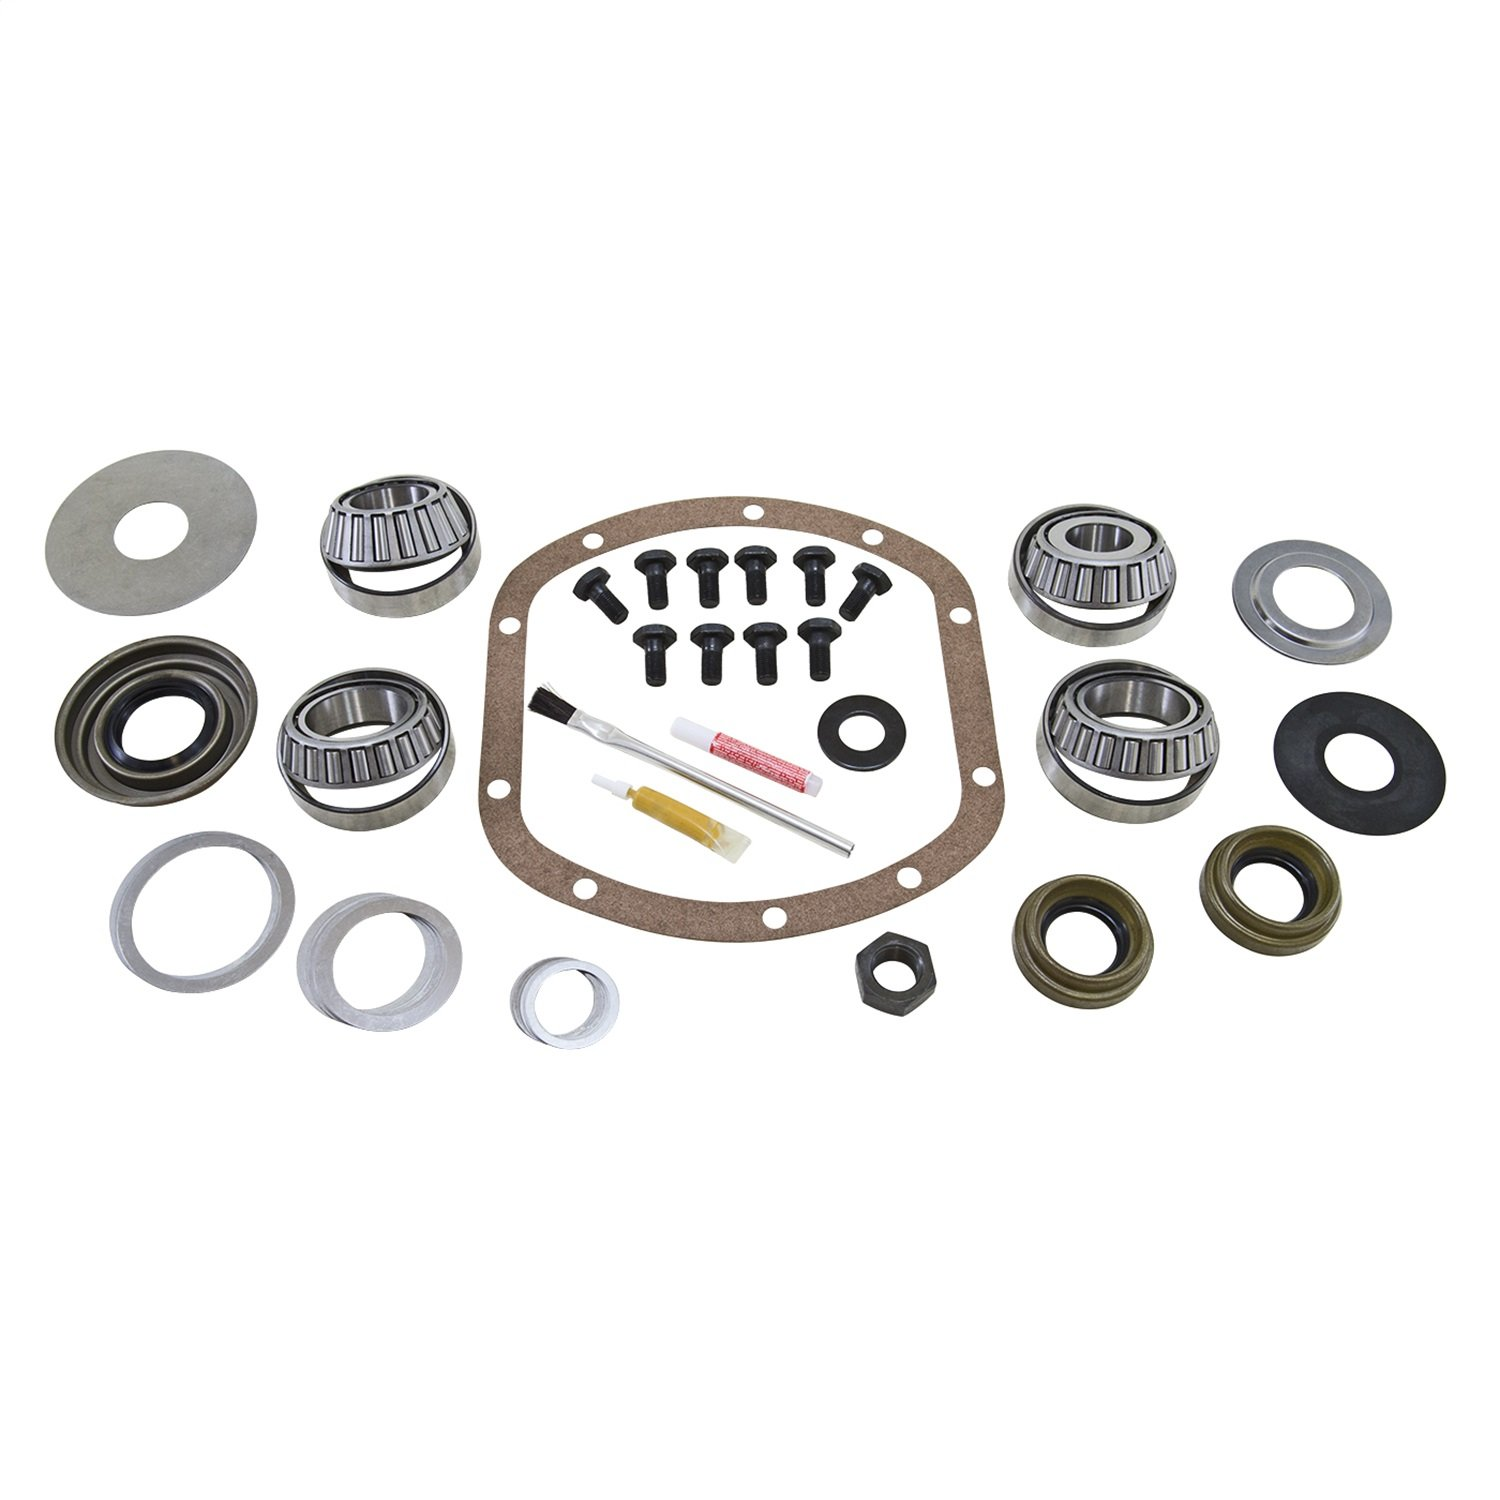 Yukon Gear & Axle (YK D30-F) Front Master Overhaul Kit for Dana 30 Axle by Yukon Gear